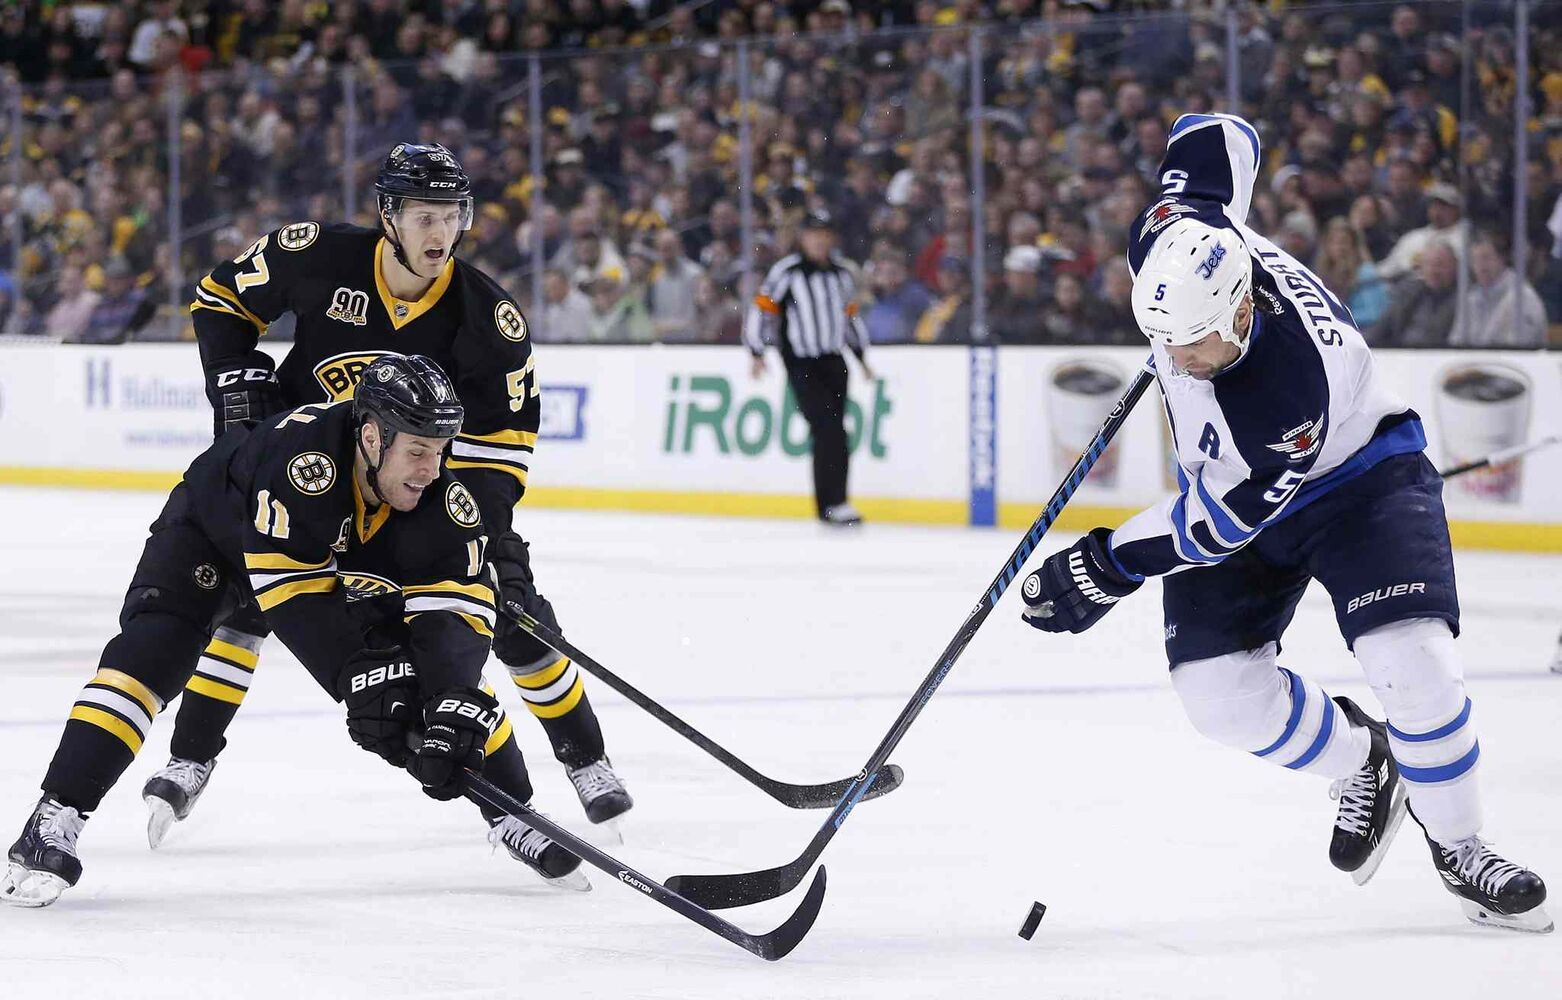 Boston Bruins' Gregory Campbell (11) and Winnipeg Jets' Mark Stuart (5) battle for the puck in the second period of an NHL hockey game in Boston Saturday. (Michael Dwyer / The Associated Press)